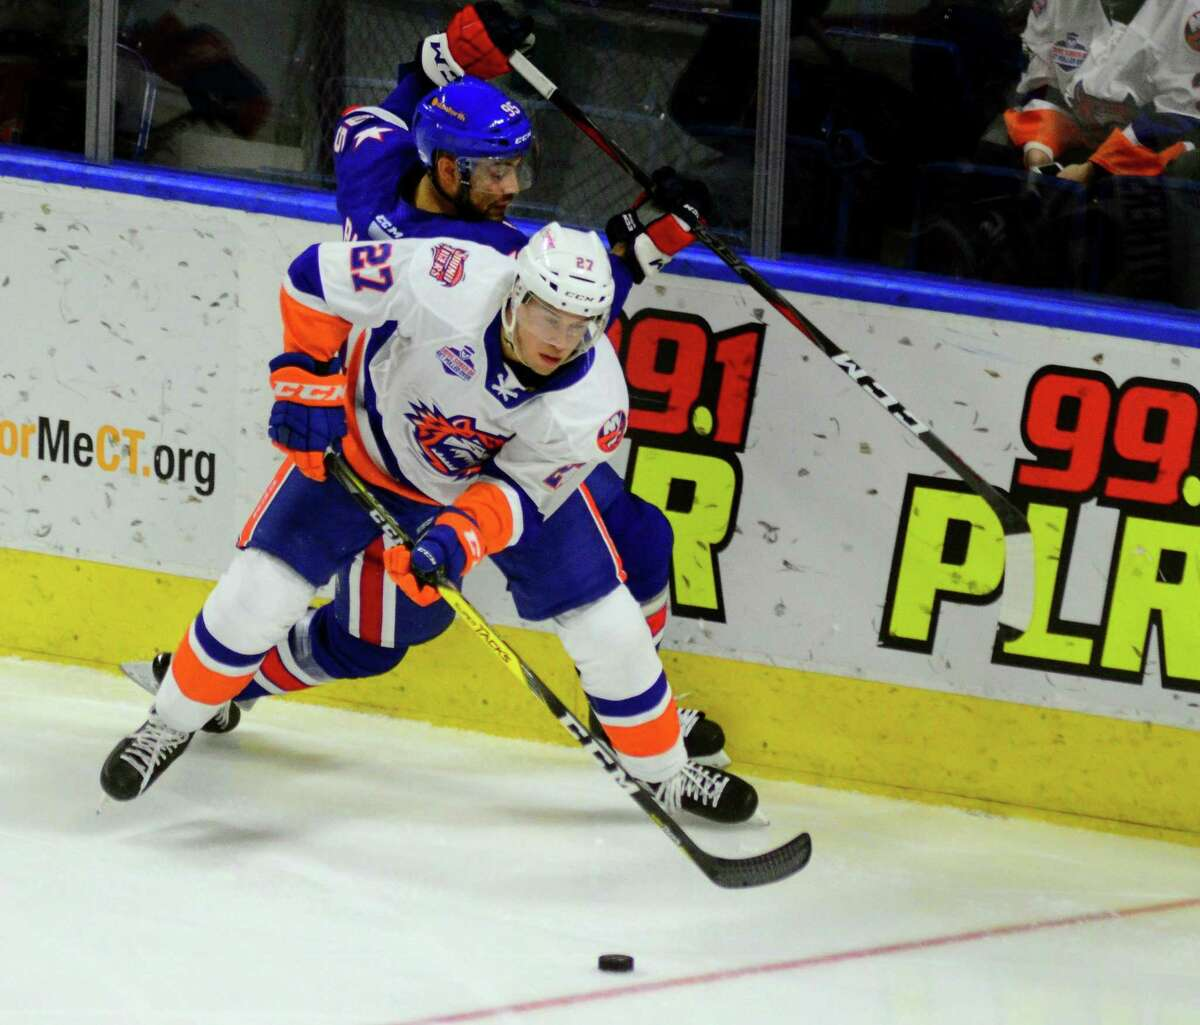 Parker Wotherspoon will return to the Bridgeport Sound Tigers after he was cut by the New York Islanders on Thursday.